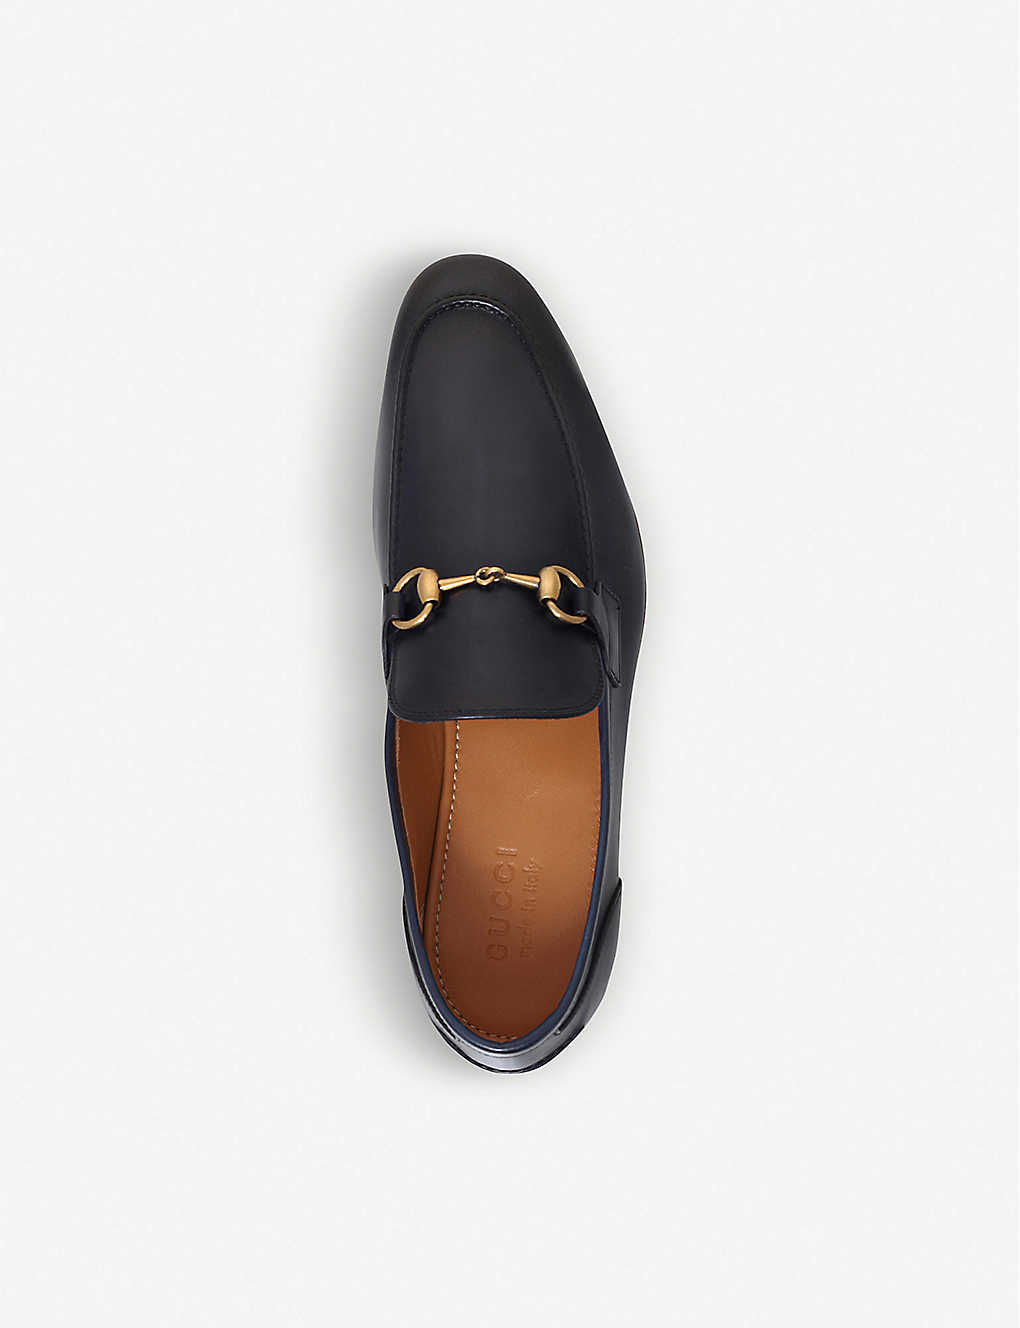 8c3ac532286 ... Jordaan leather loafers - Navy ...